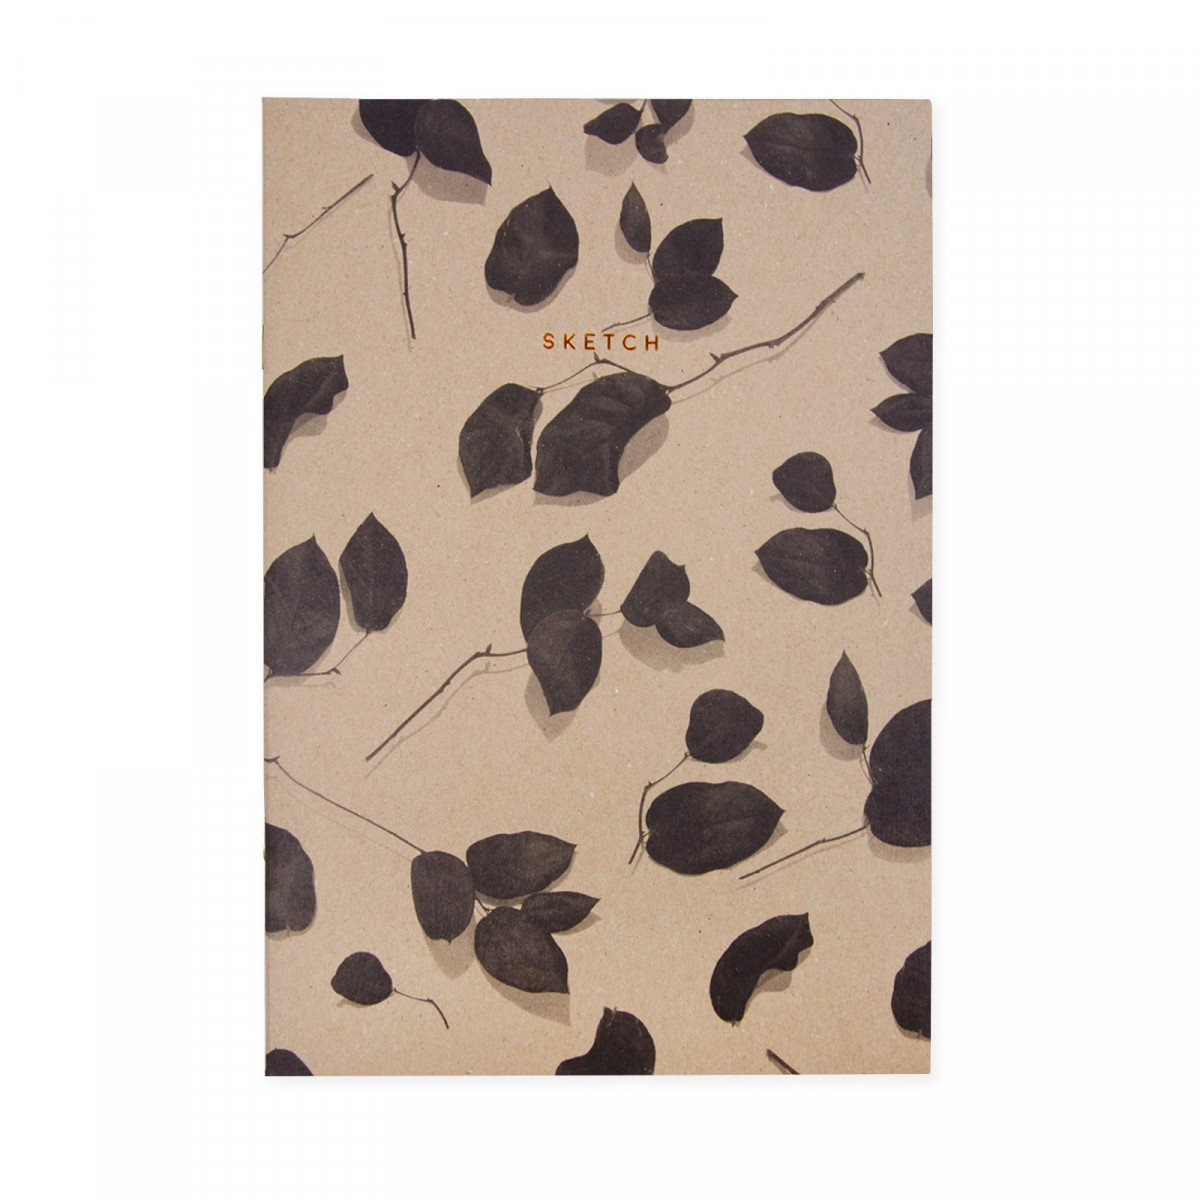 aw-s-002-1826_rose_leaf_a4ish_notebook.jpg